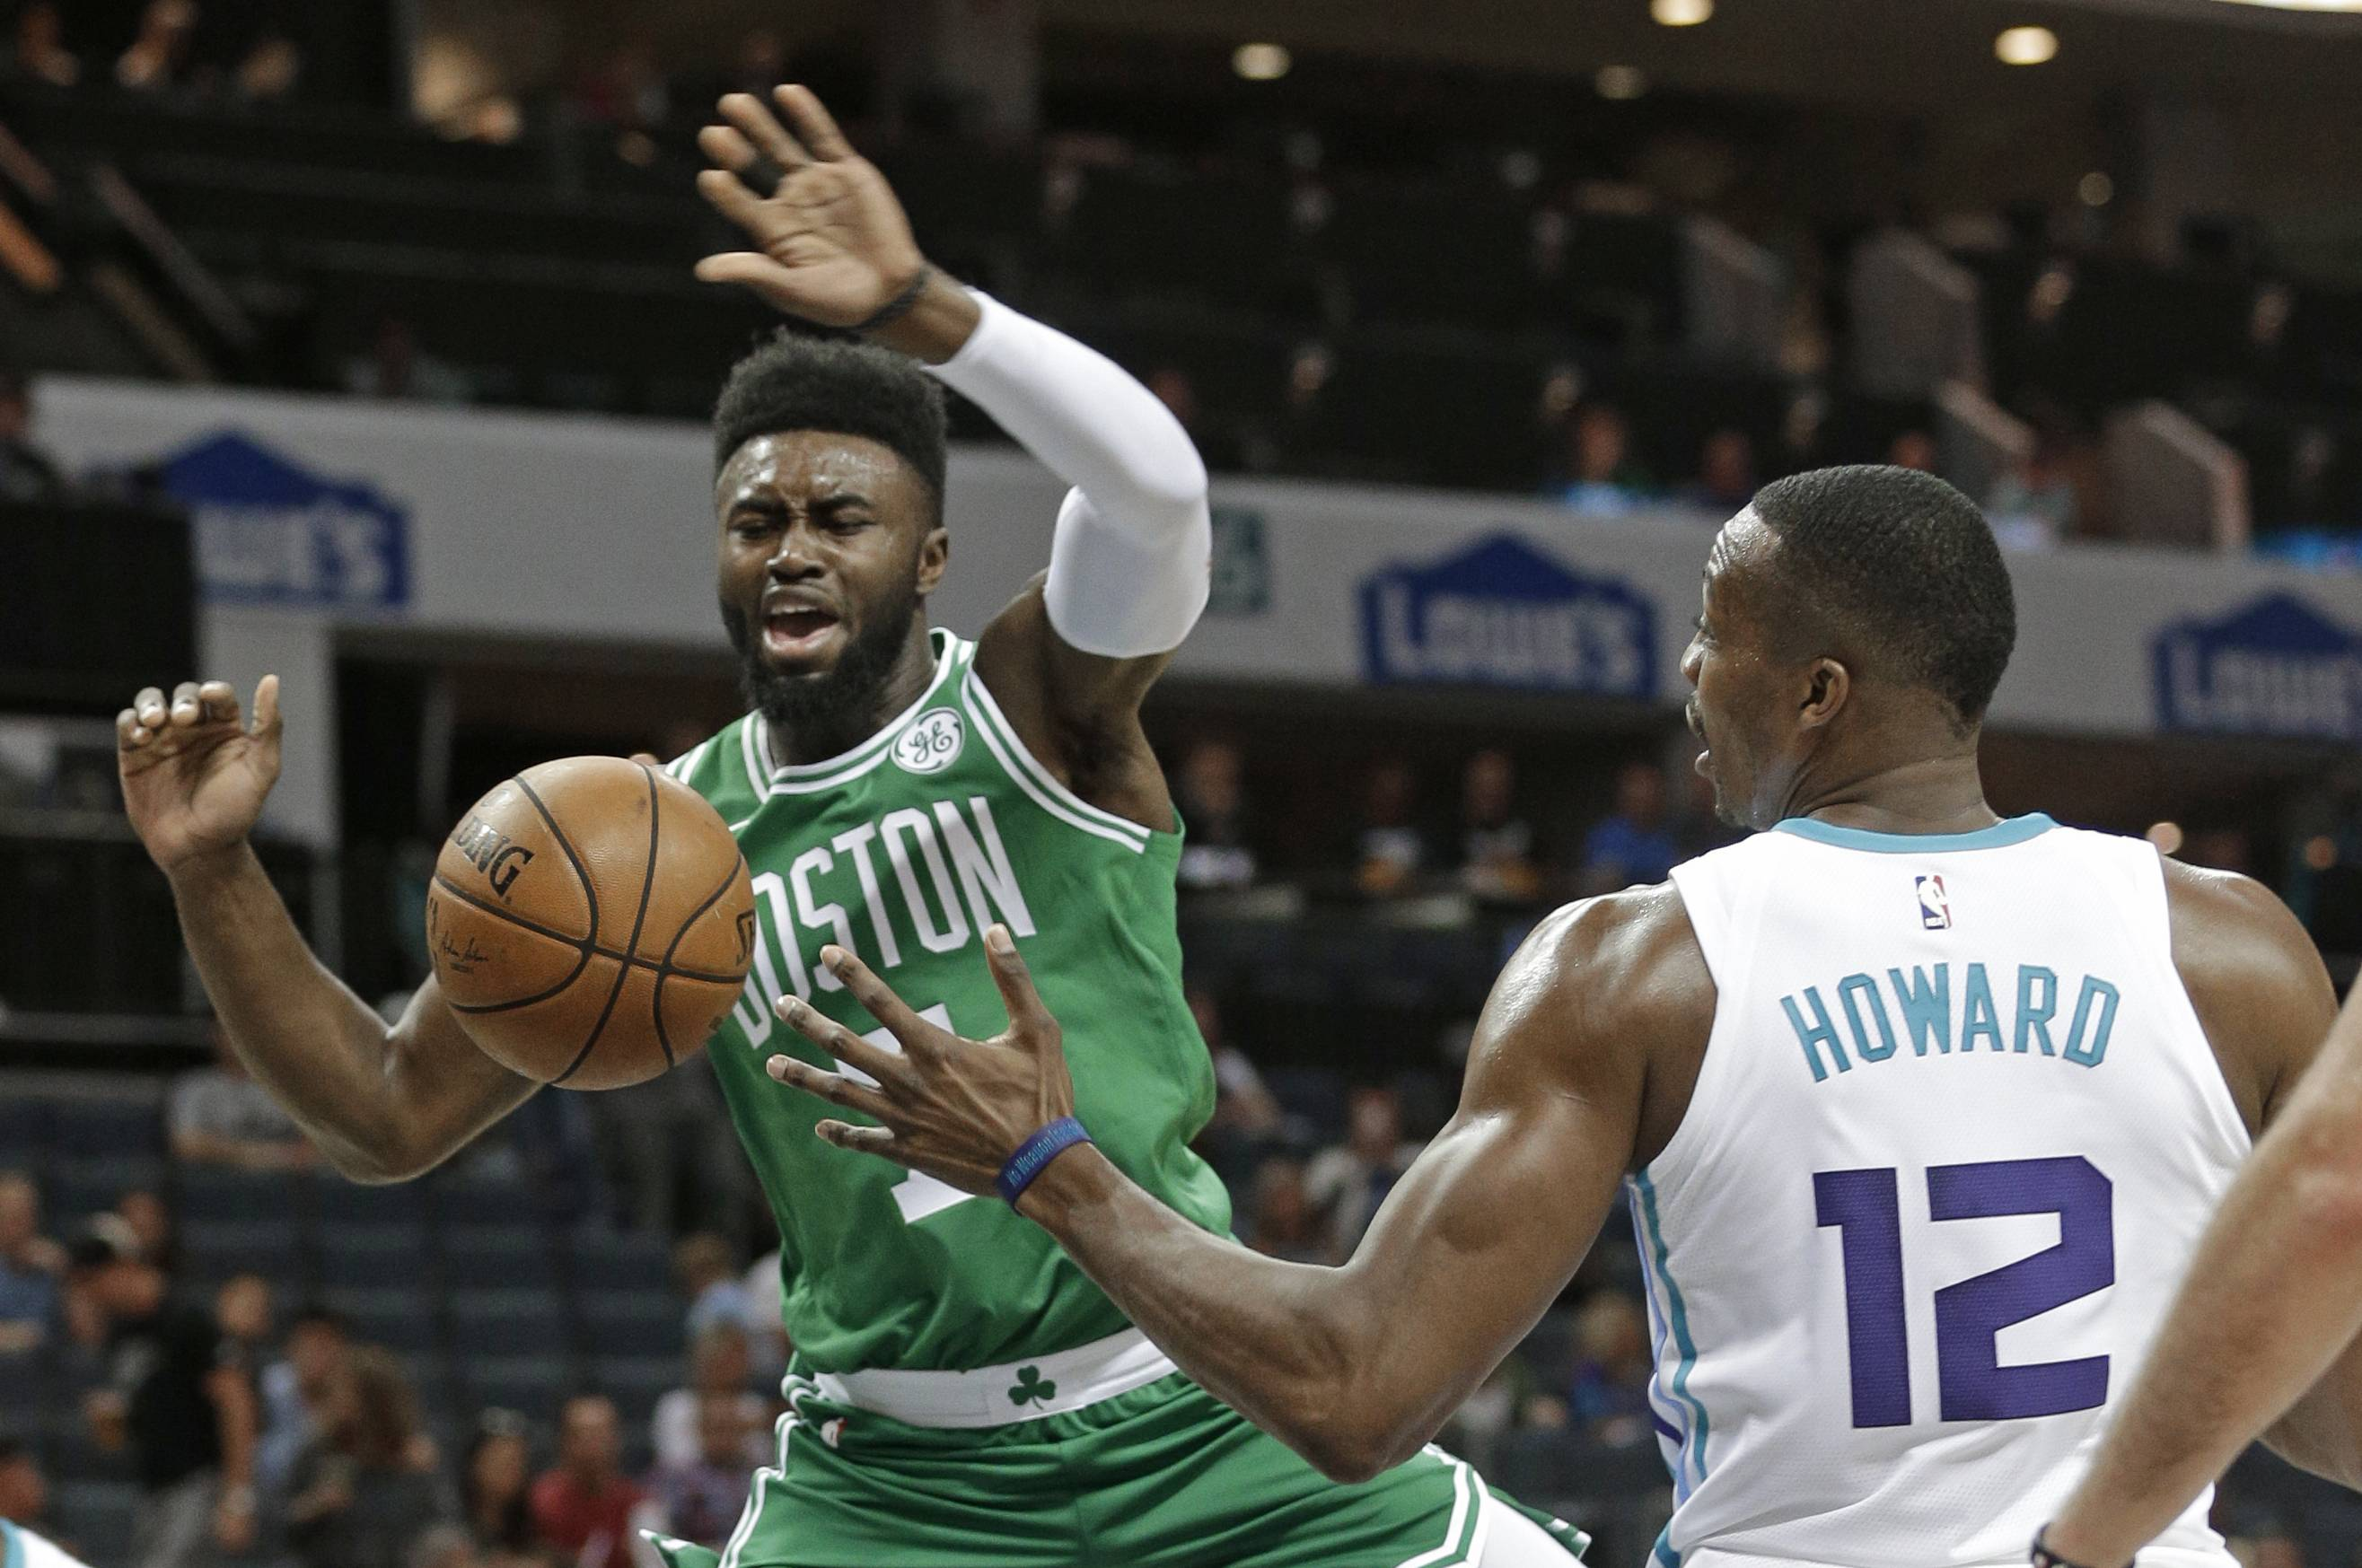 Boston Celtics' Jaylen Brown (7) is fouled by Charlotte Hornets' Dwight Howard (12) in the first half of a preseason NBA basketball game in Charlotte, N.C., Wednesday, Oct. 11, 2017.